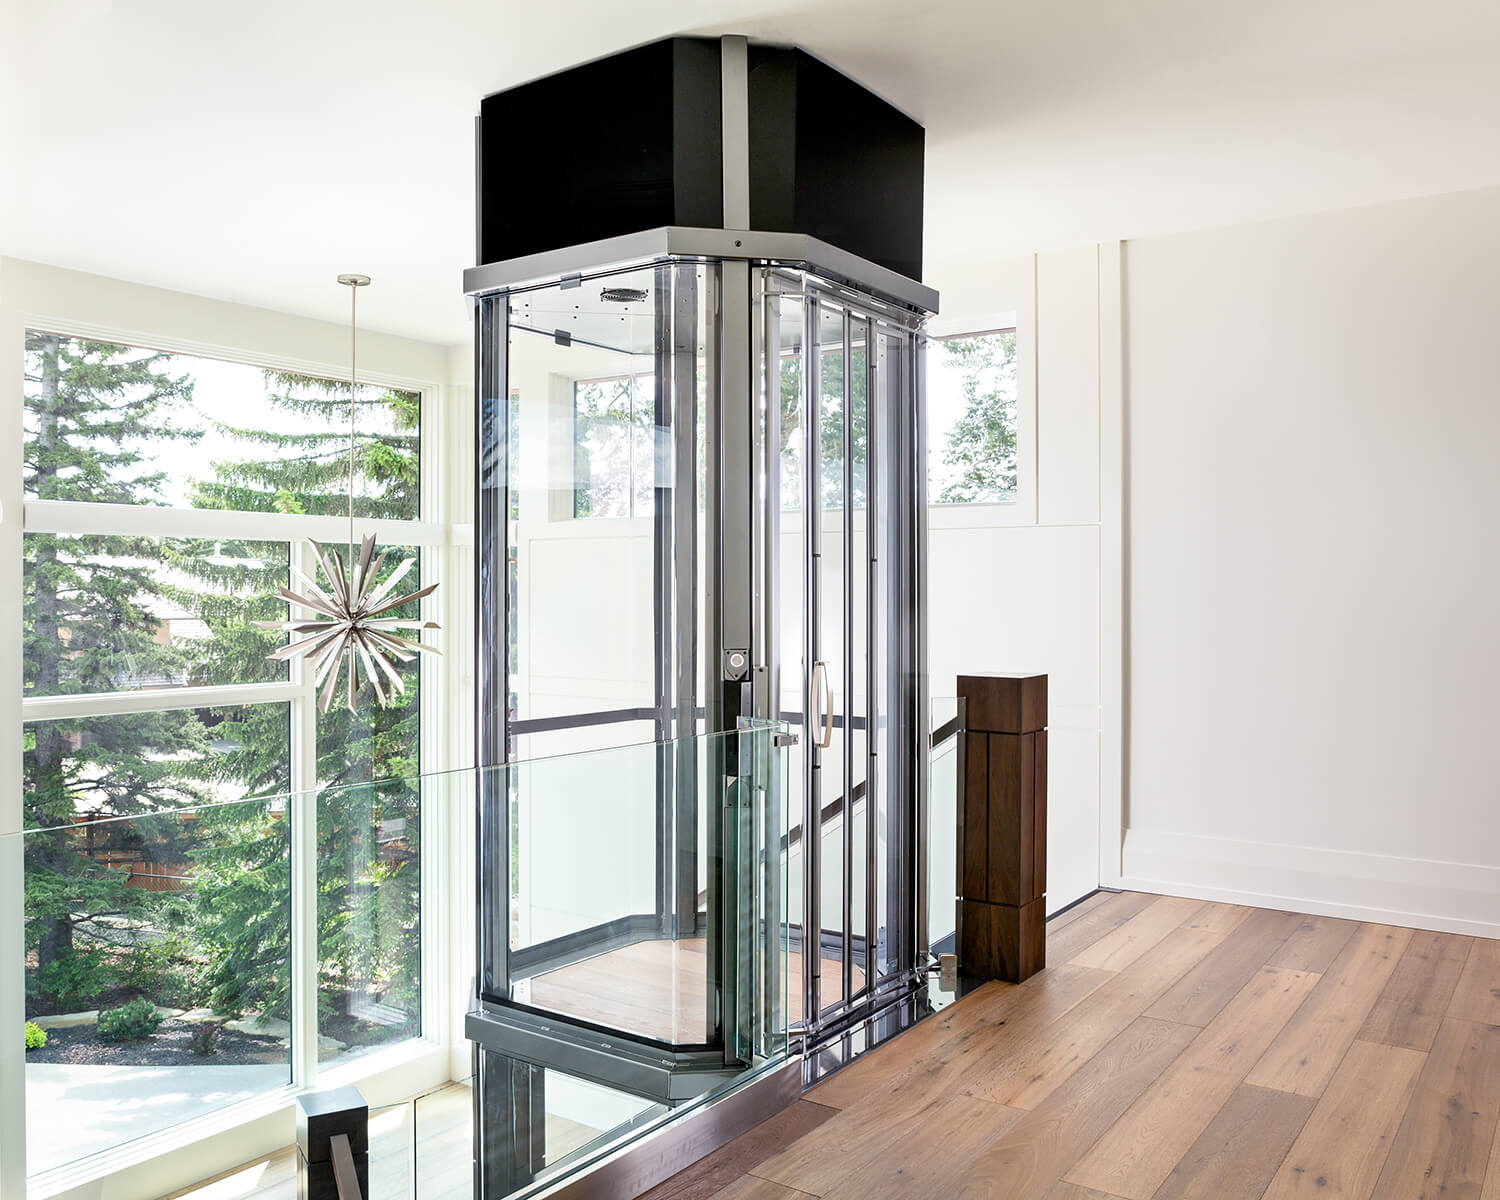 Savaria Octagonal Acrylic Panoramic Home Elevator with silver metal frame opening to wood floor balcony